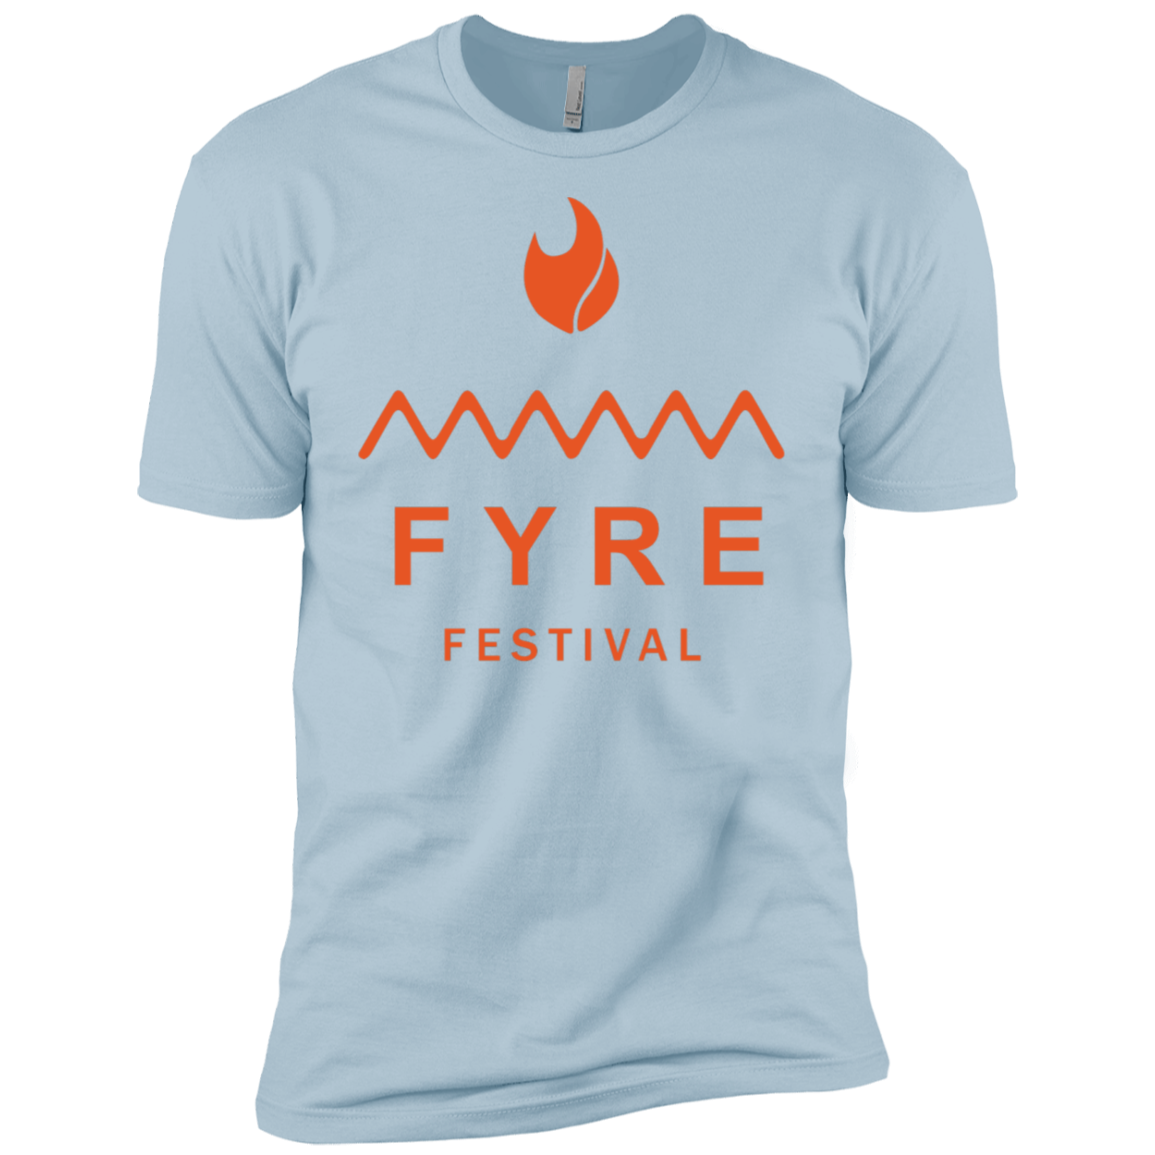 Fyre Festival was Lit Orange Men's Classic Tee - Trendy Tees